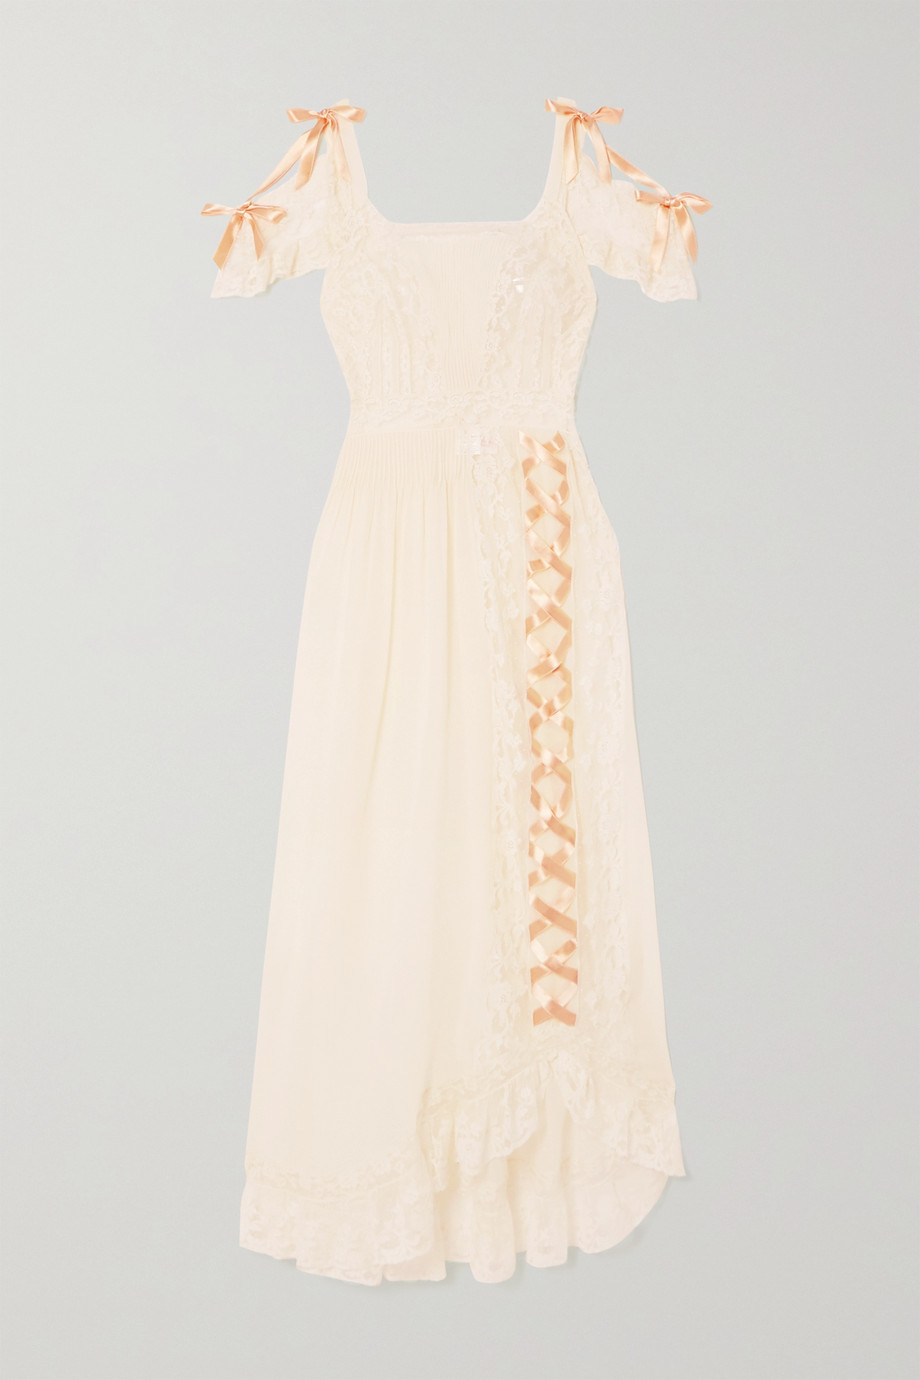 Loretta Caponi Agnes lace-trimmed silk-georgette nightdress